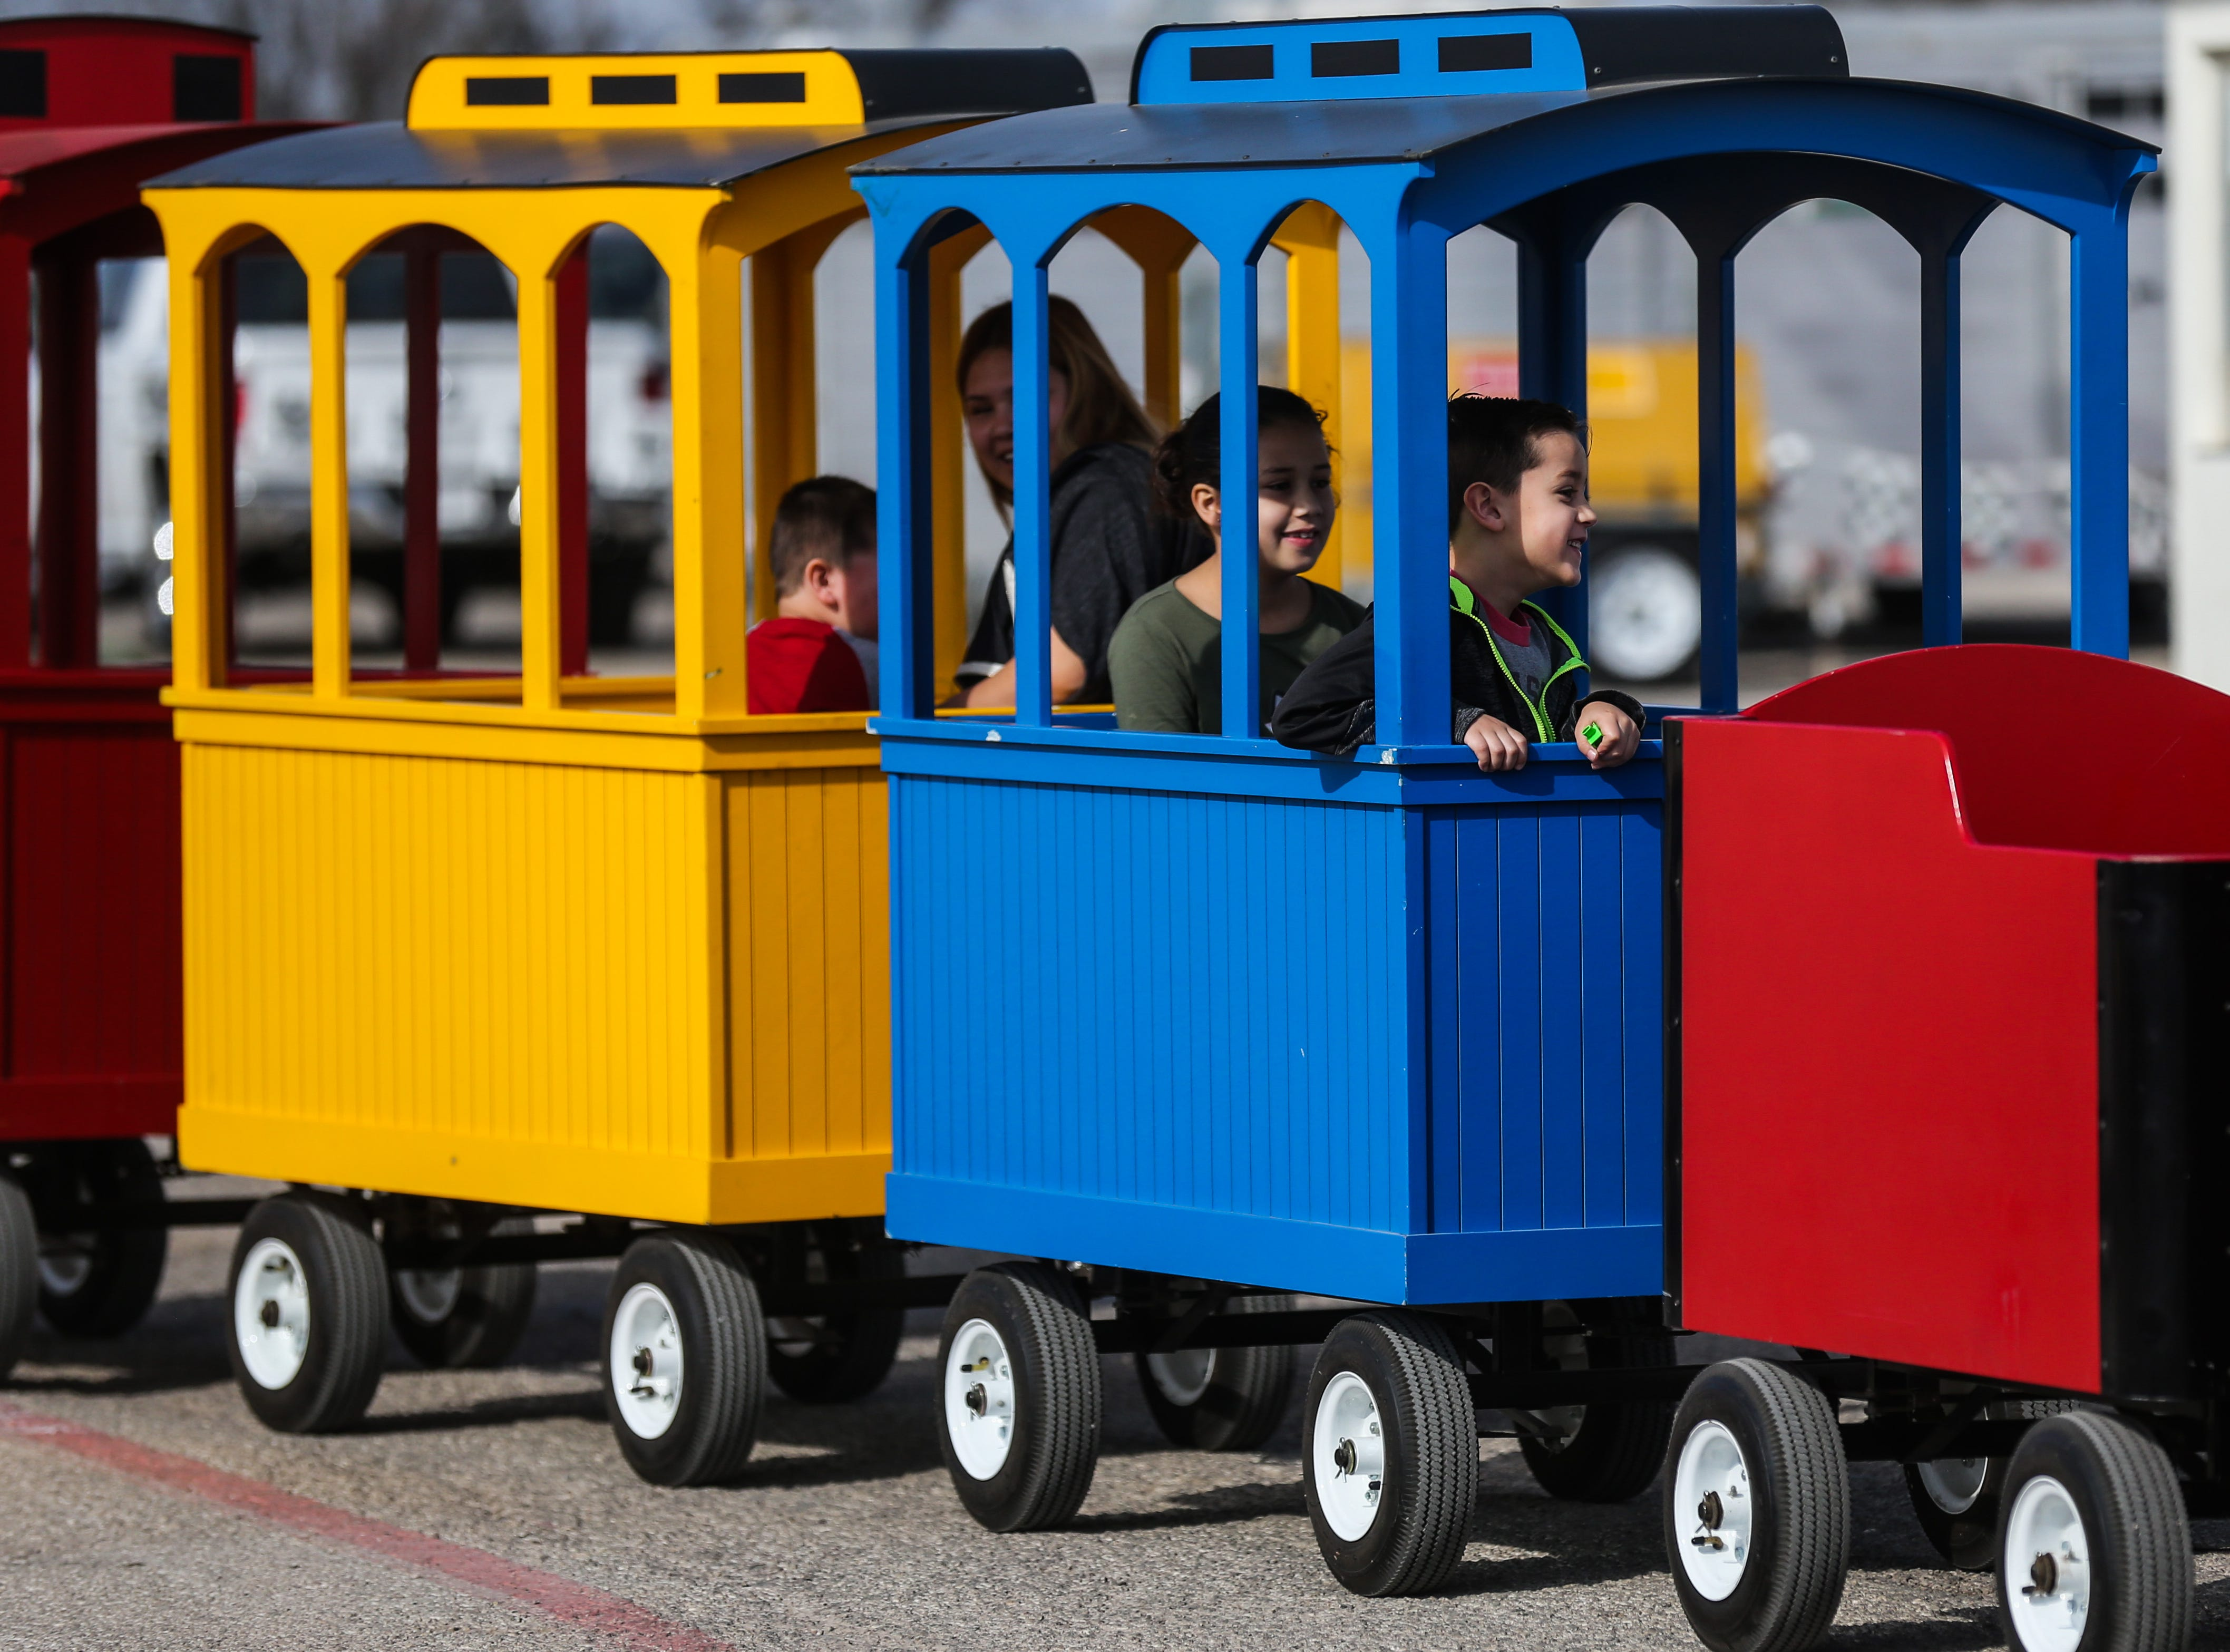 Students take a train ride during a field trip to the San Angelo Stock Show & Rodeo Tuesday, Feb. 5, 2019, at the San Angelo Fairgrounds.